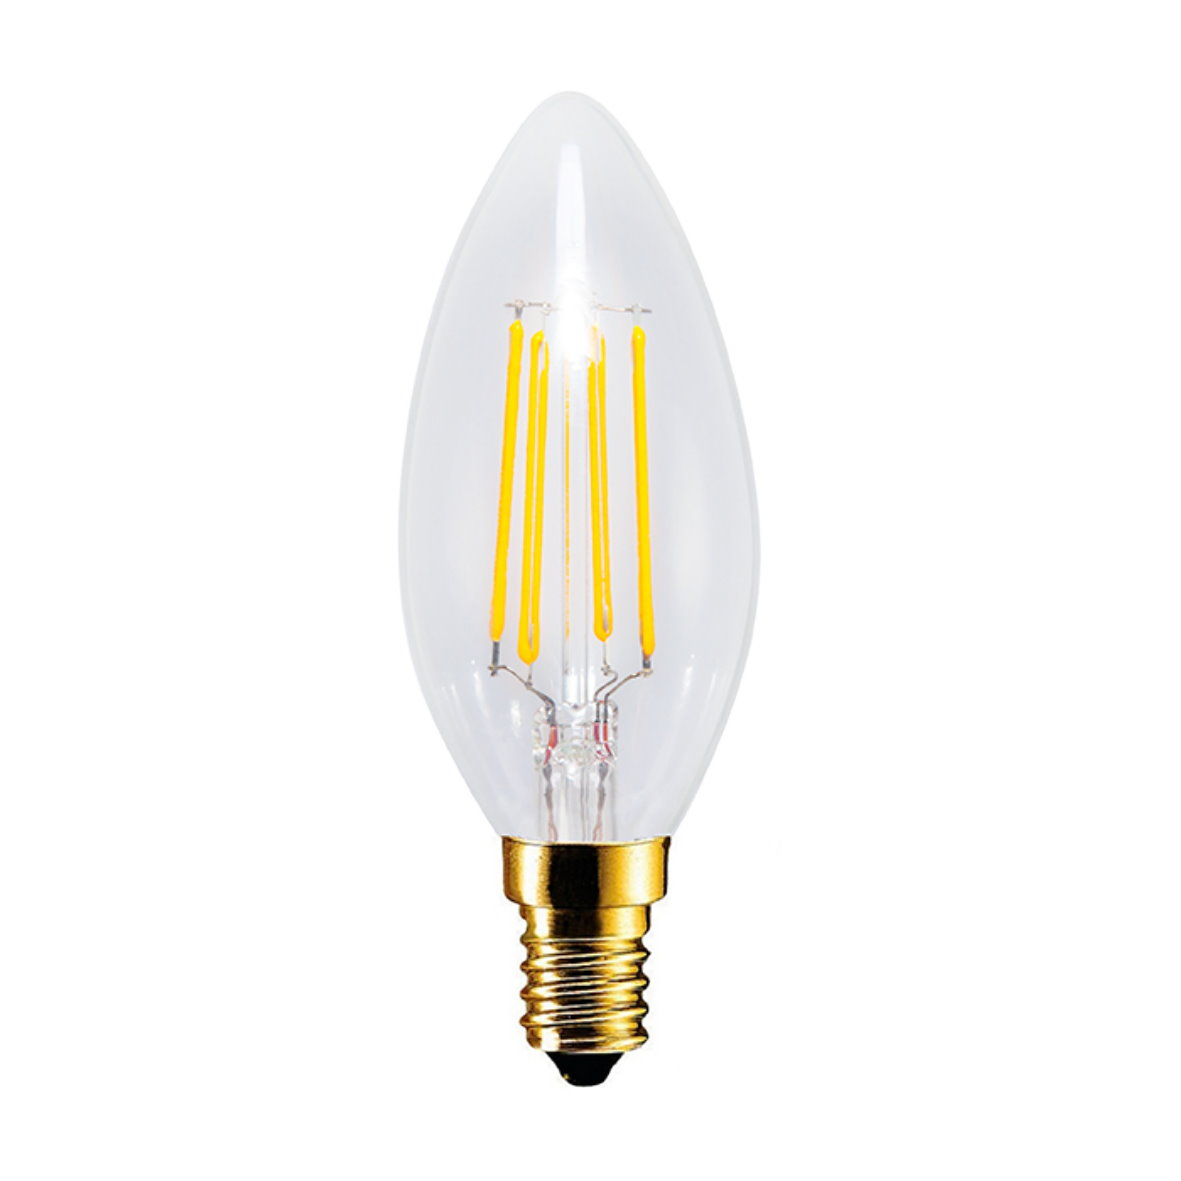 segula cob led leuchtmittel filament edison dimmbar. Black Bedroom Furniture Sets. Home Design Ideas